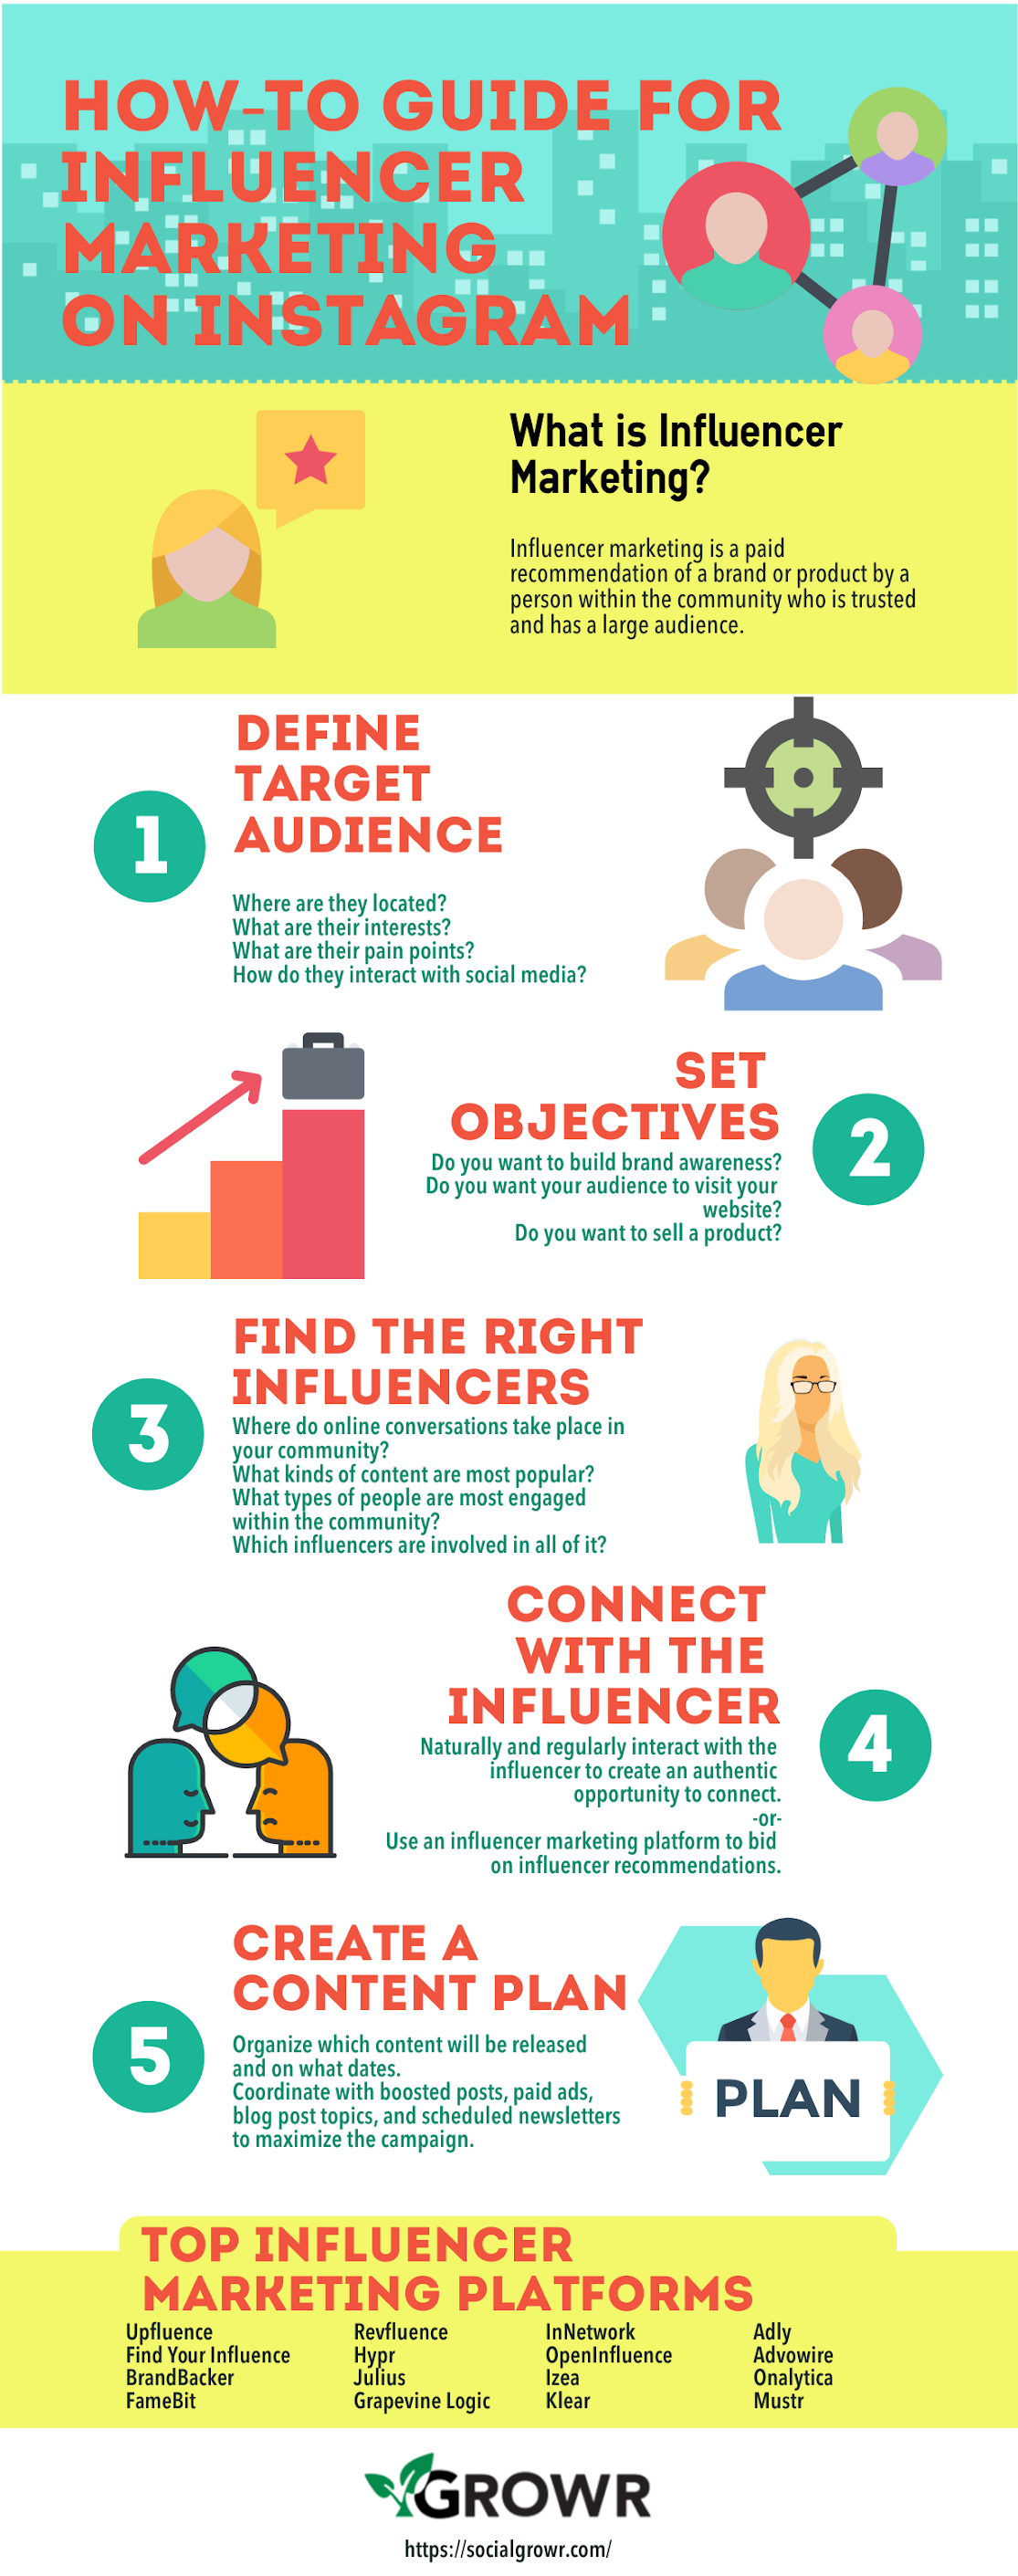 [Infographic] Power Up Your Influencer Marketing with Instagram